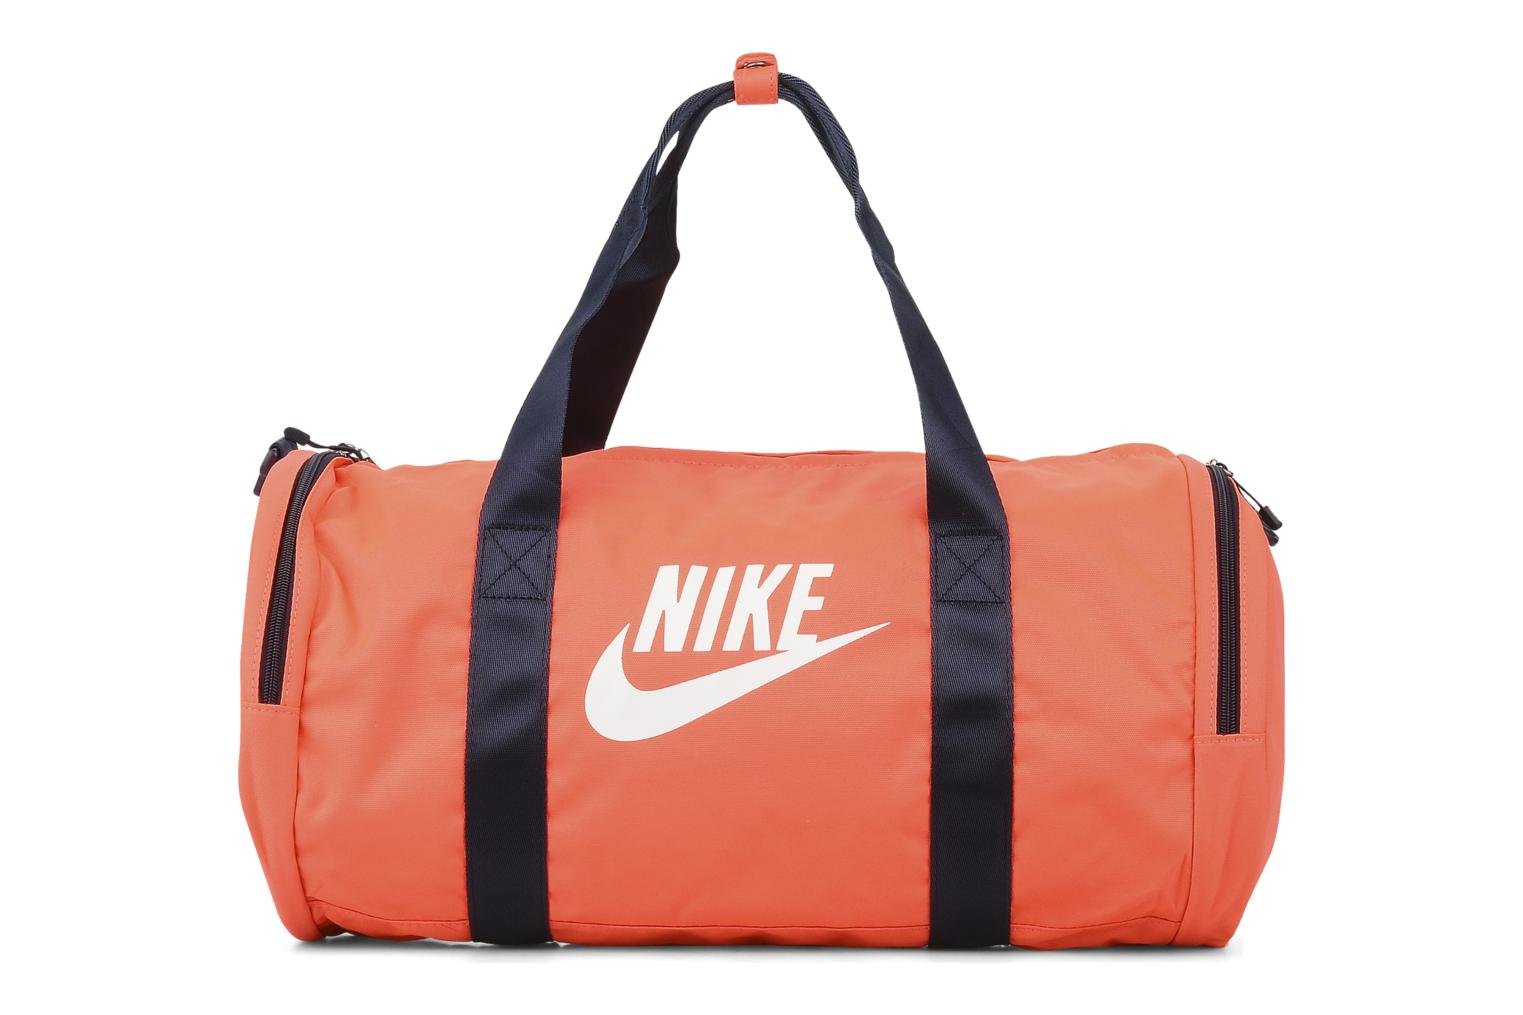 nike nike raceday medium duffel rouge sacs de sport chez sarenza 62791. Black Bedroom Furniture Sets. Home Design Ideas